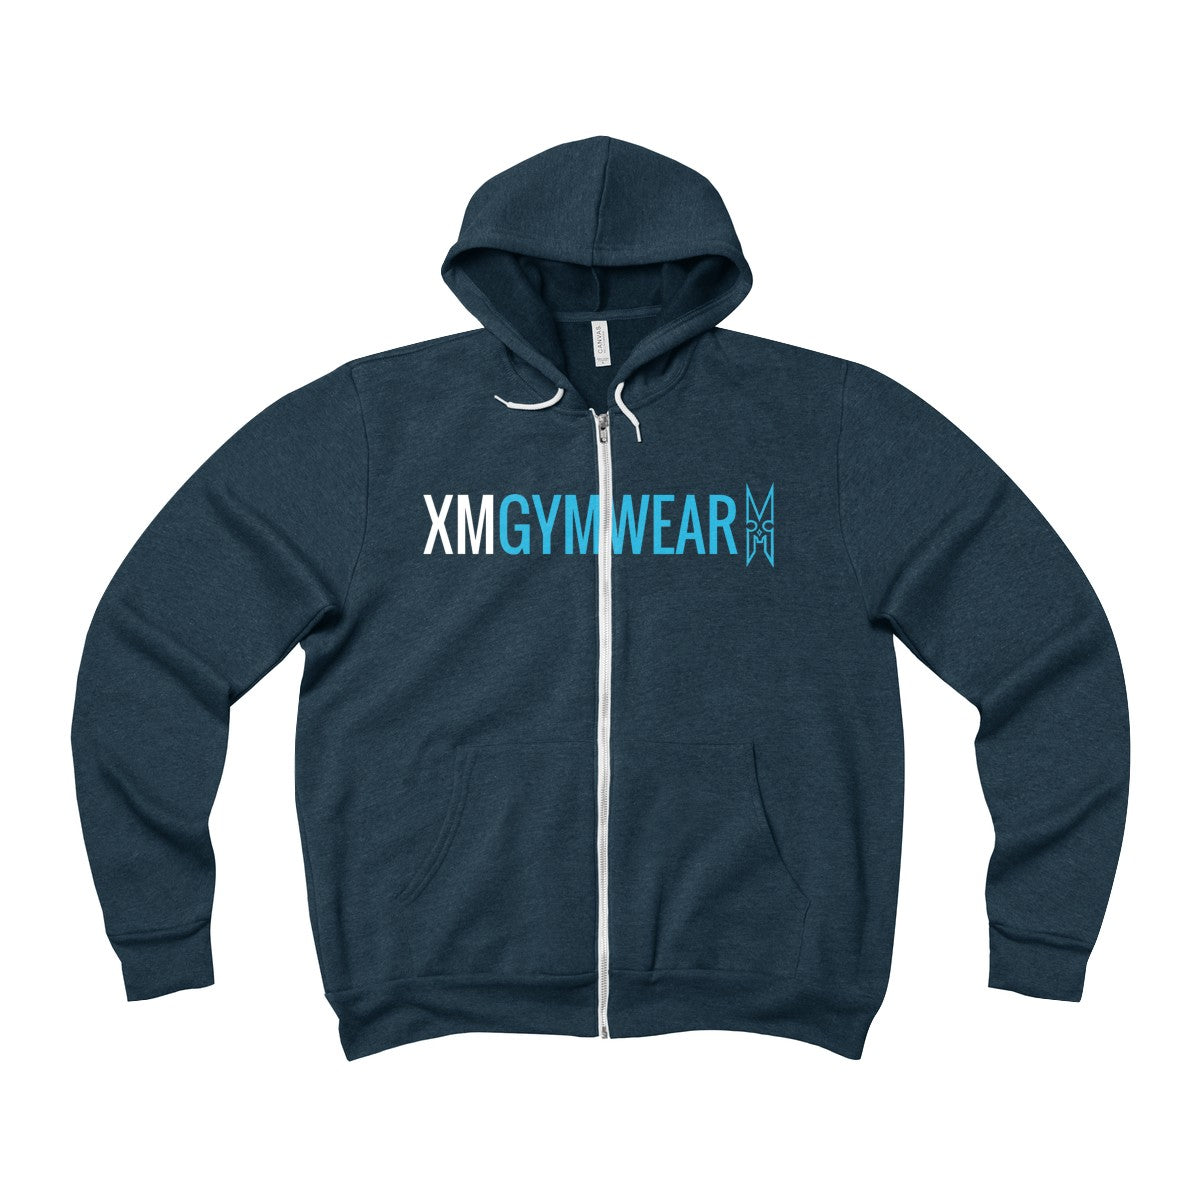 XMGYMWEAR Unisex Sponge Fleece Full-Zip Hoodie